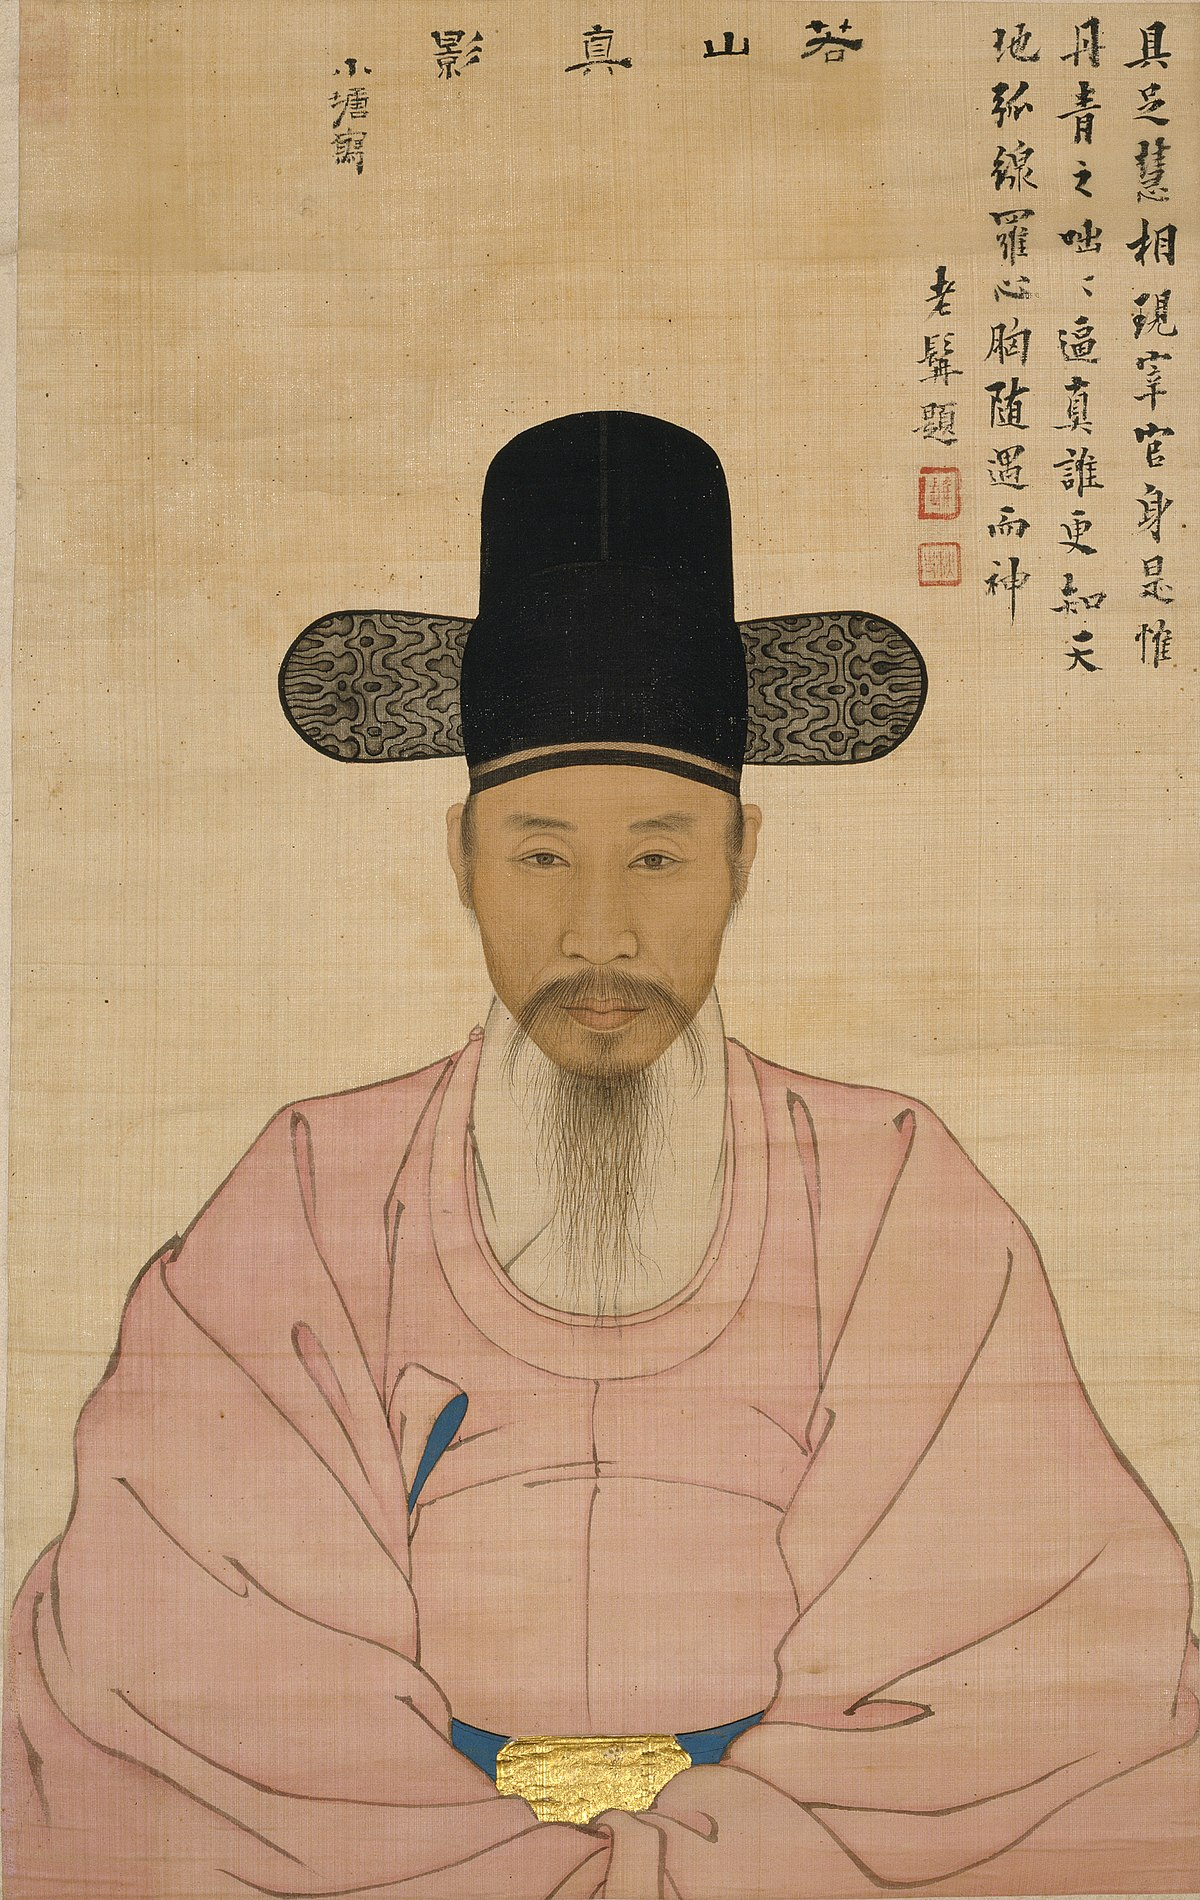 cc08d2a2250 Korean painting - Wikipedia